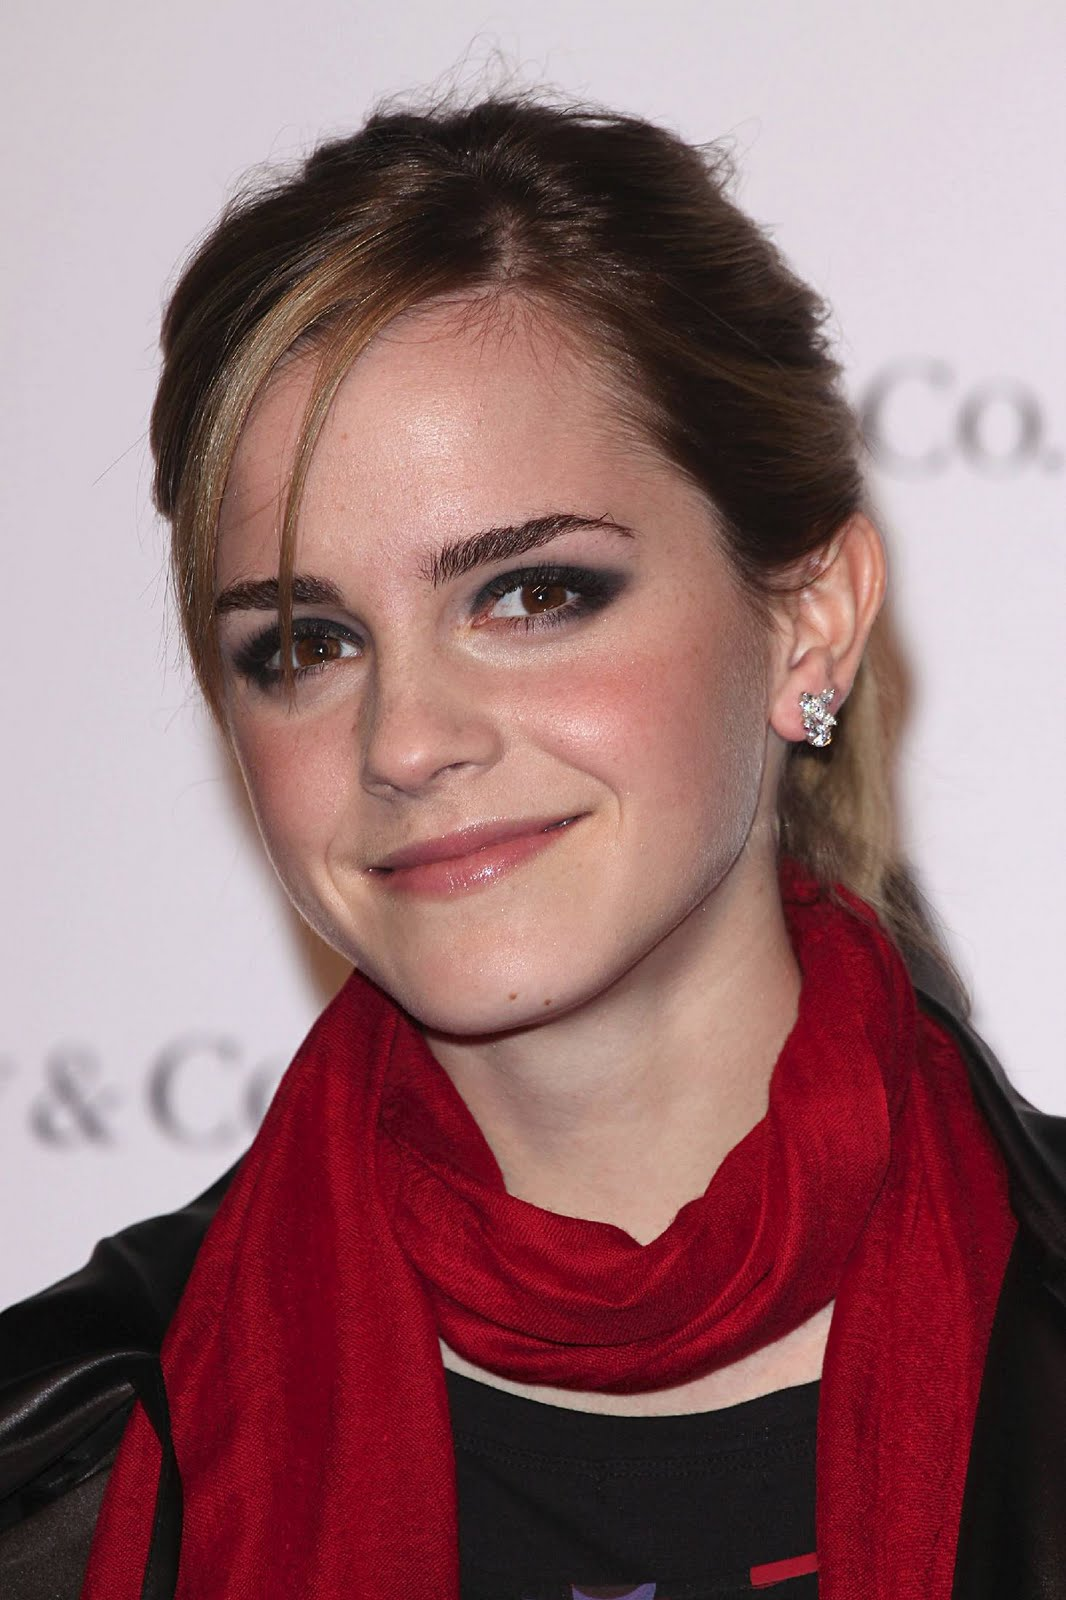 Emma Watson Beautiful Hairstyles Photo Sheclick Com